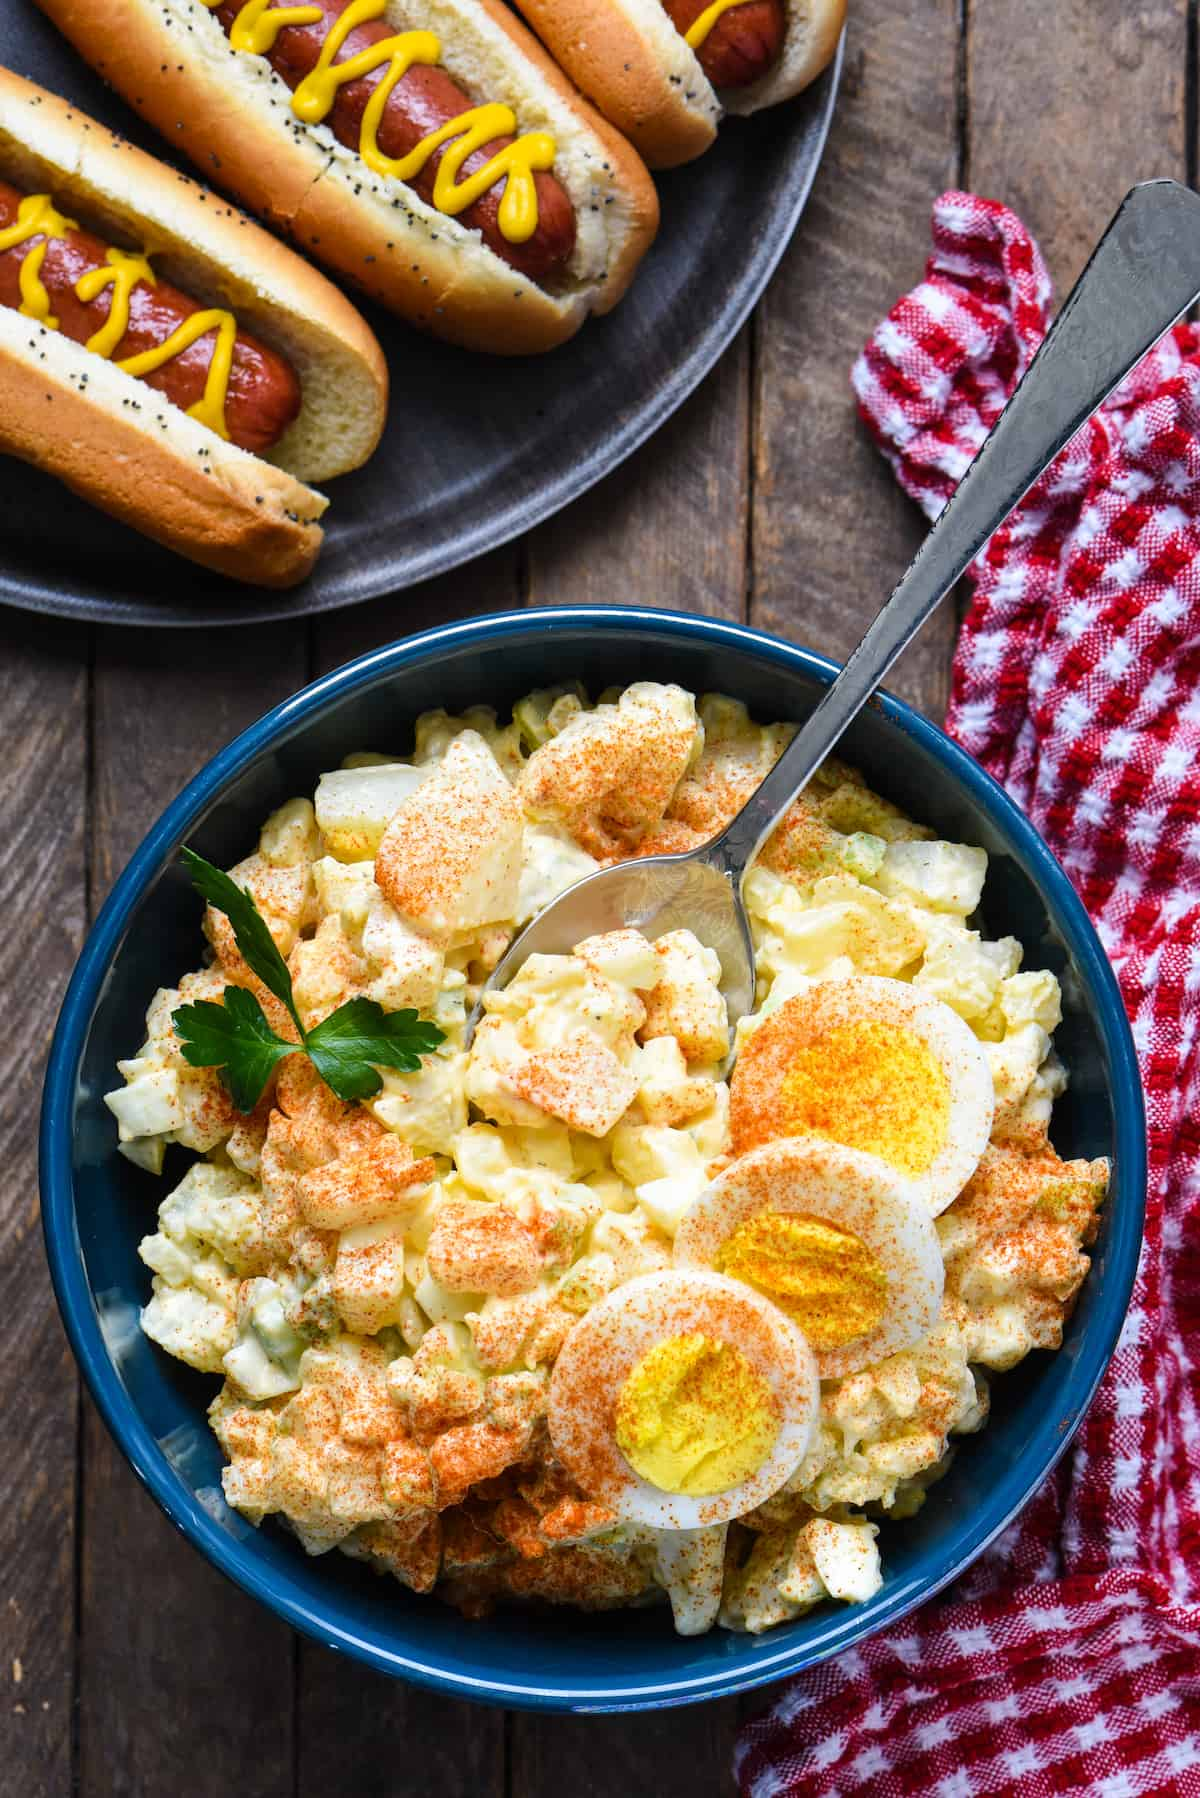 ThisGood Midwestern Potato Salad is the side dish of your dreams. Potatoes, eggs, celery and onion, dressed with a creamy, tangy sauce. So simple and so good! | foxeslovelemons.com